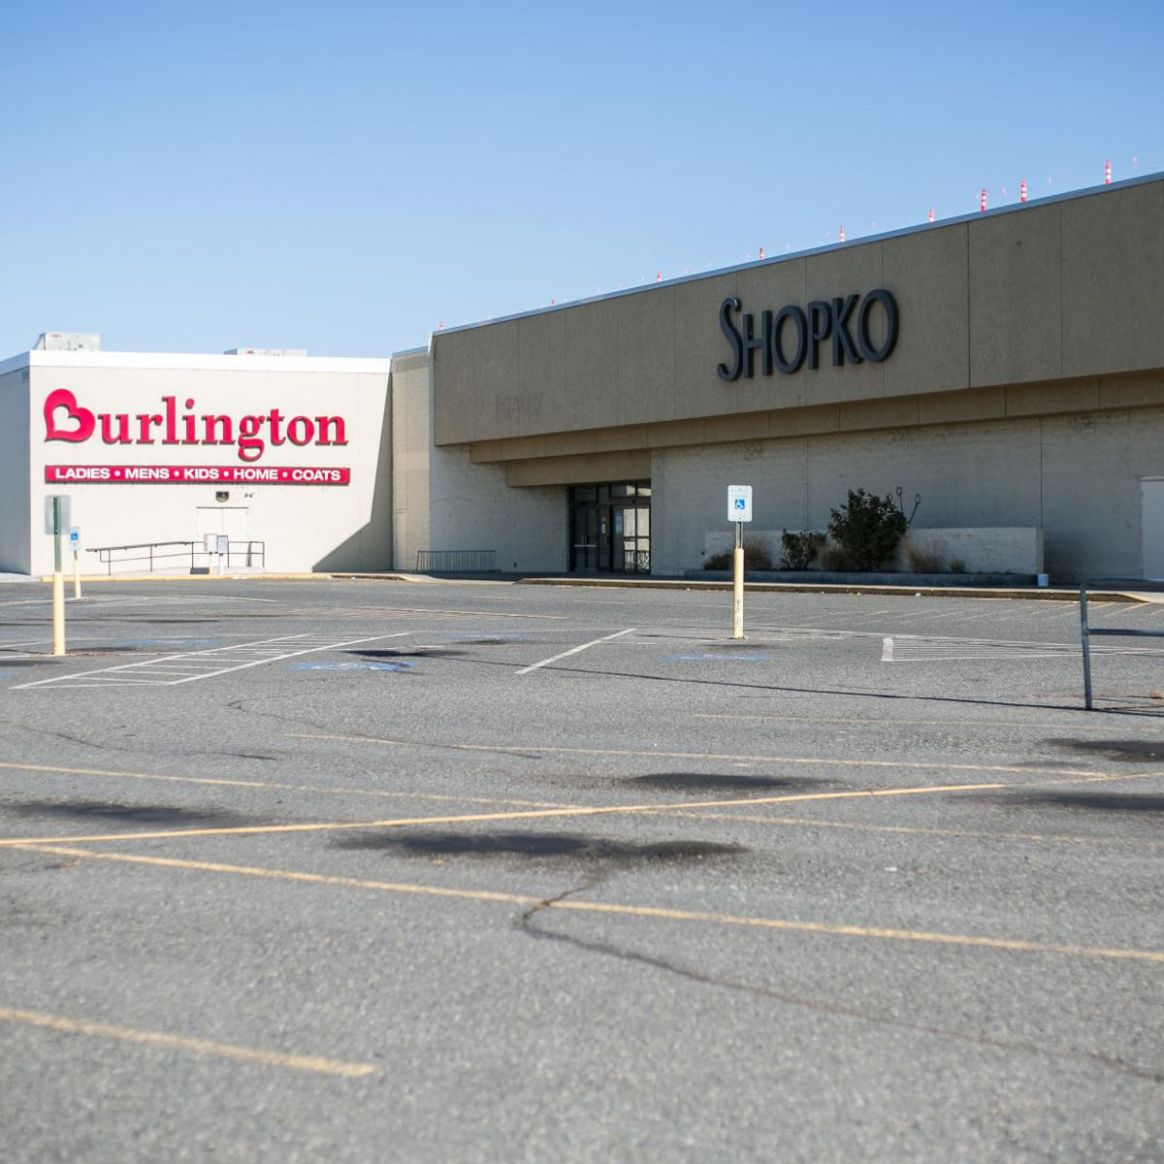 Home decor store to open in former Shopko location in Union Gap ..